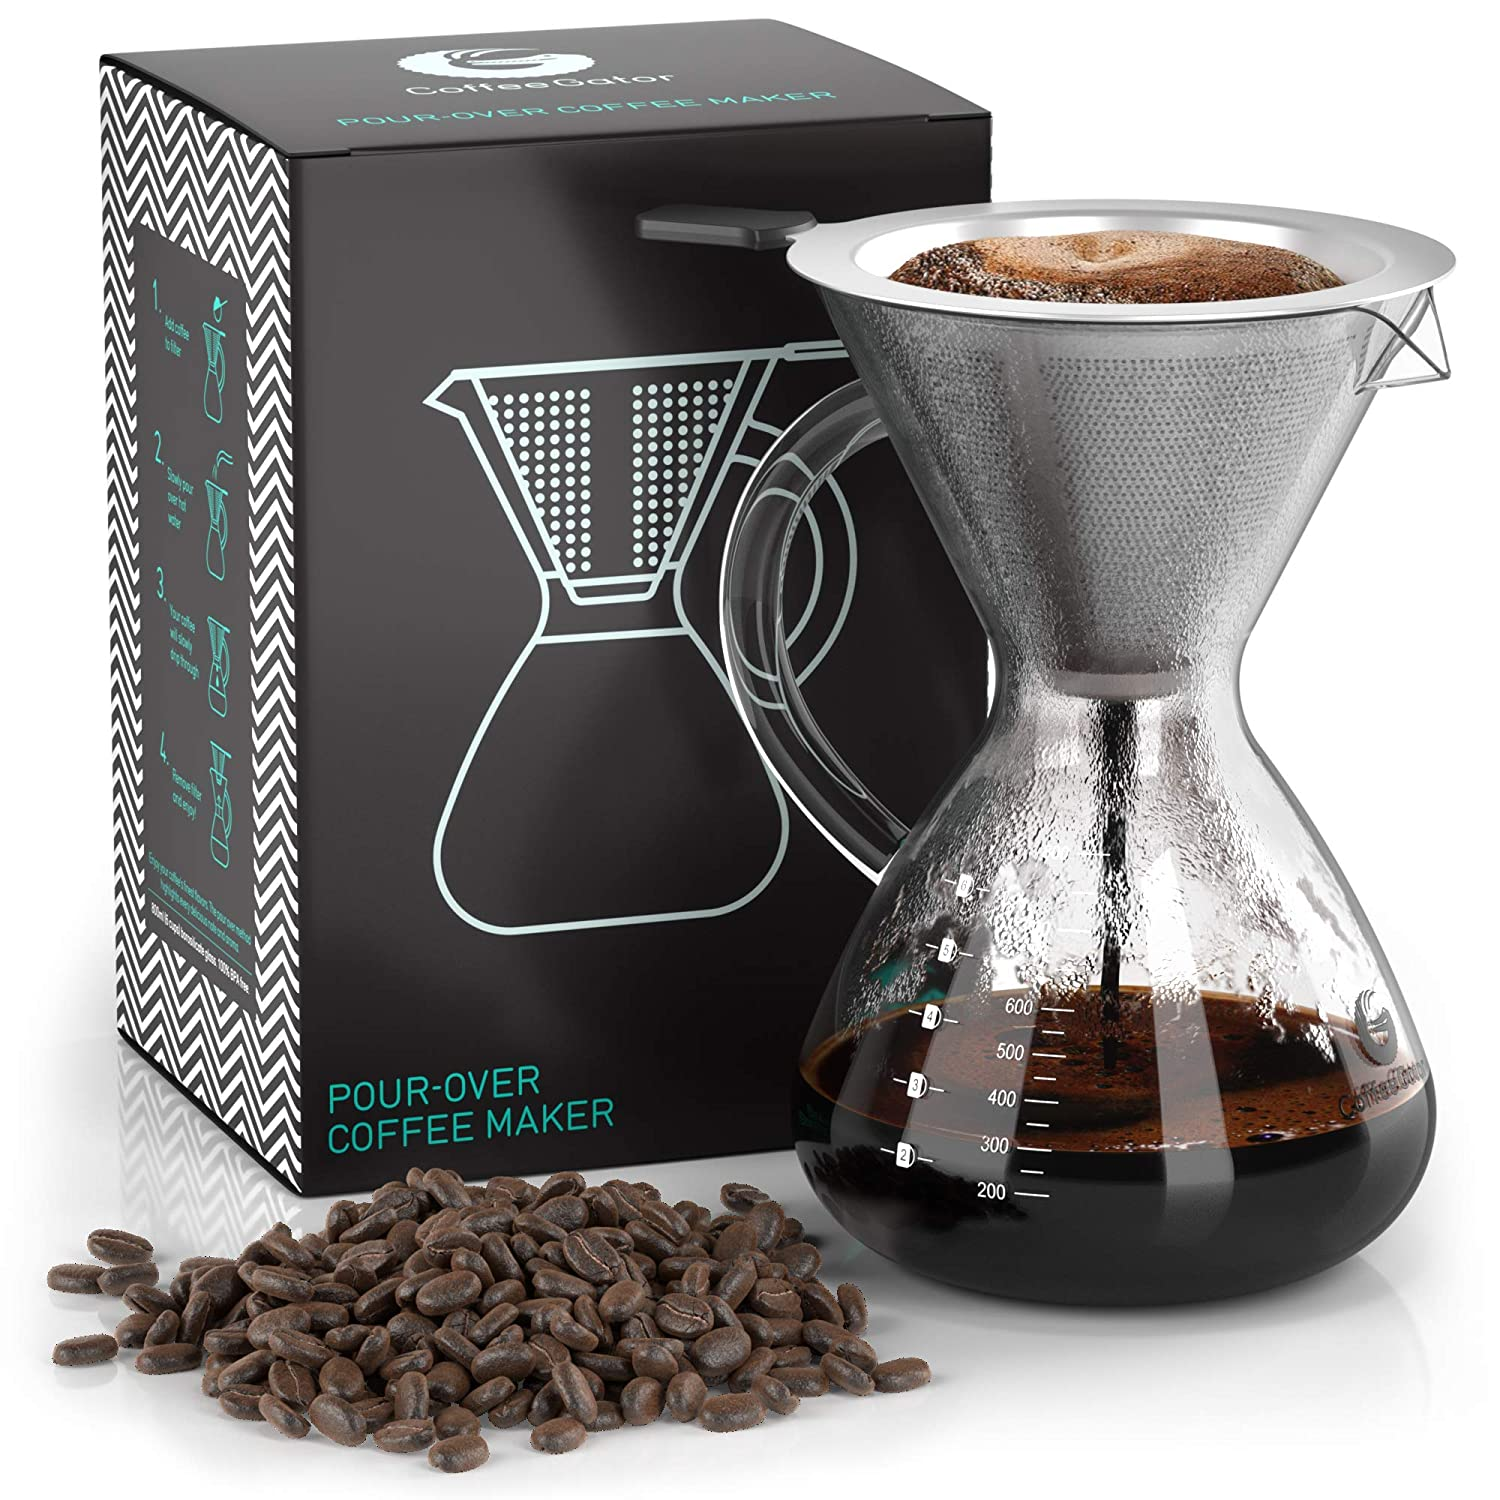 Pour Over Coffee Dripper – Coffee Gator Paperless Pour Over Coffee Maker – Stainless Steel Filter and BPA-Free Glass Carafe – Flavor Unlocking Hand Drip Brewer – 27oz